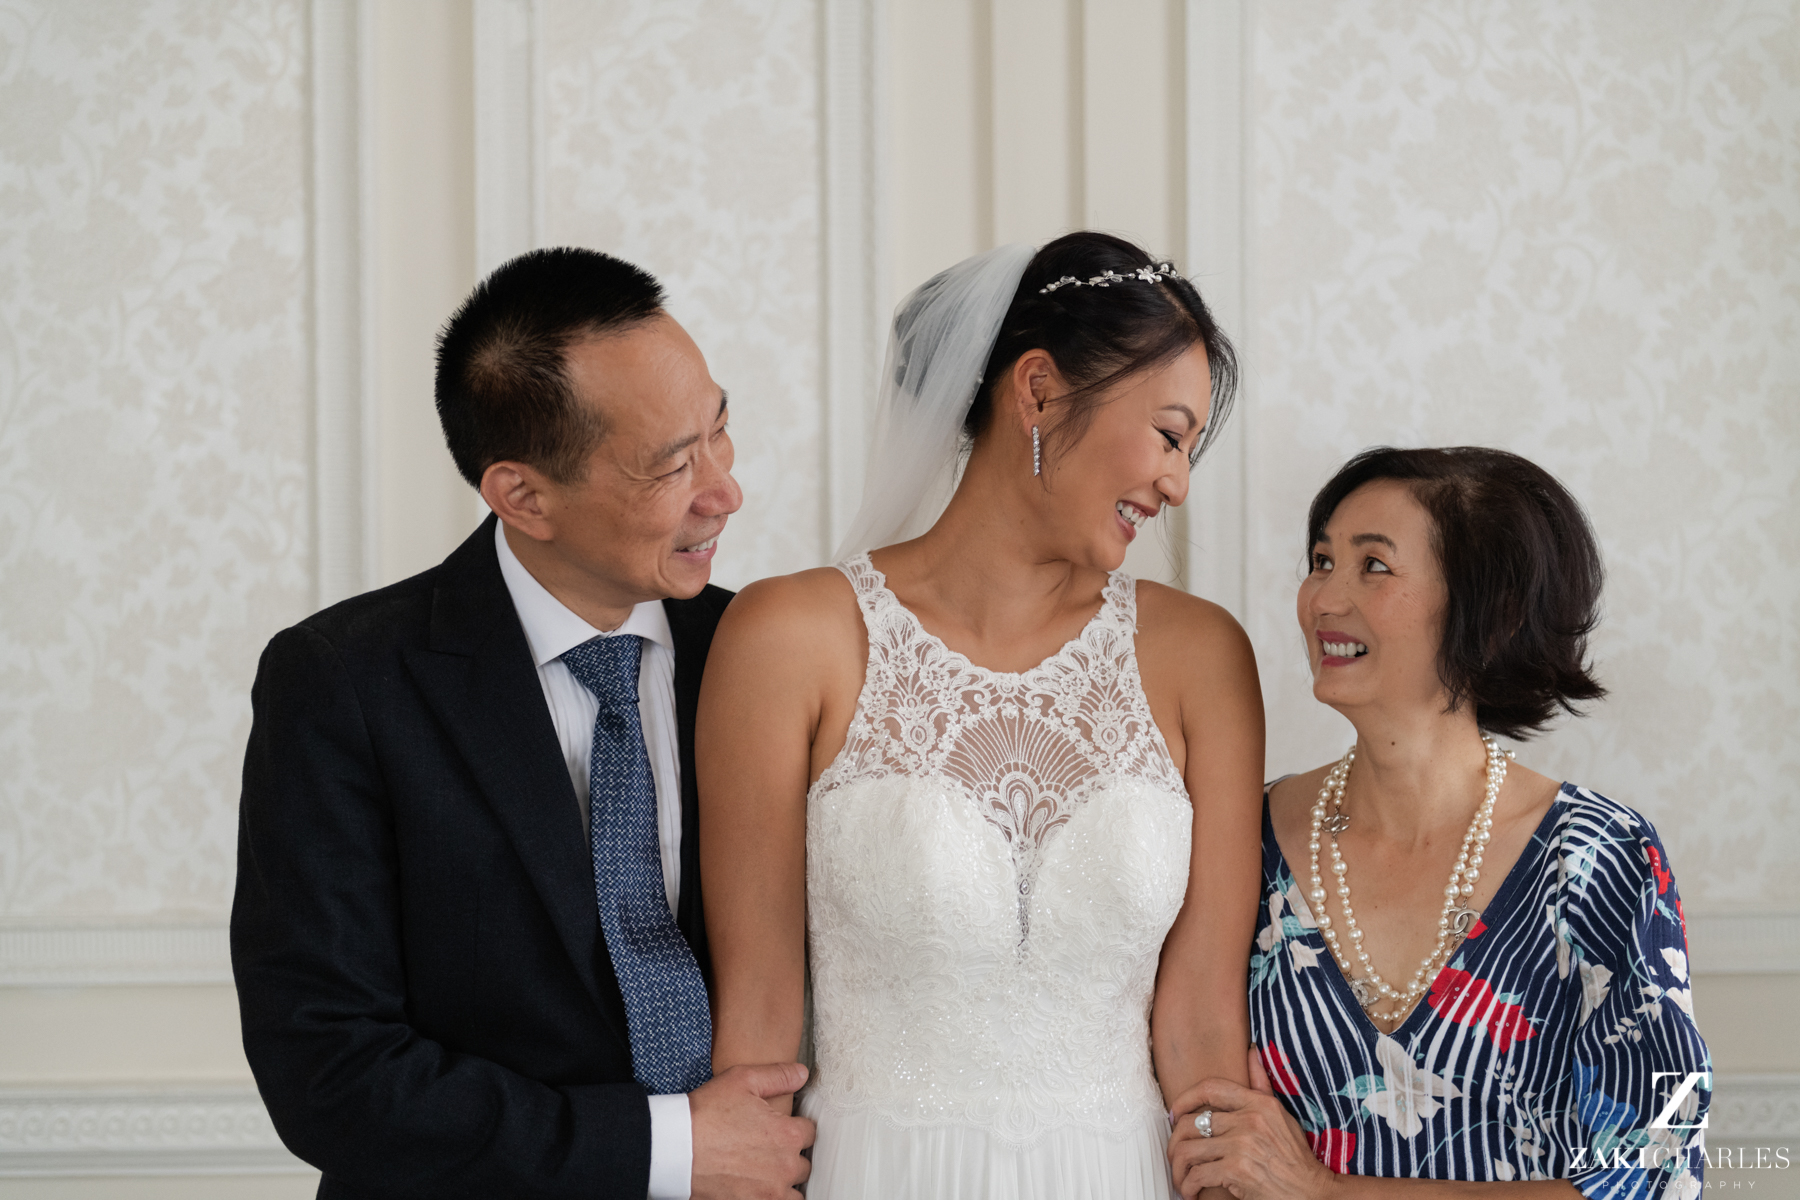 First look with brides parents 12